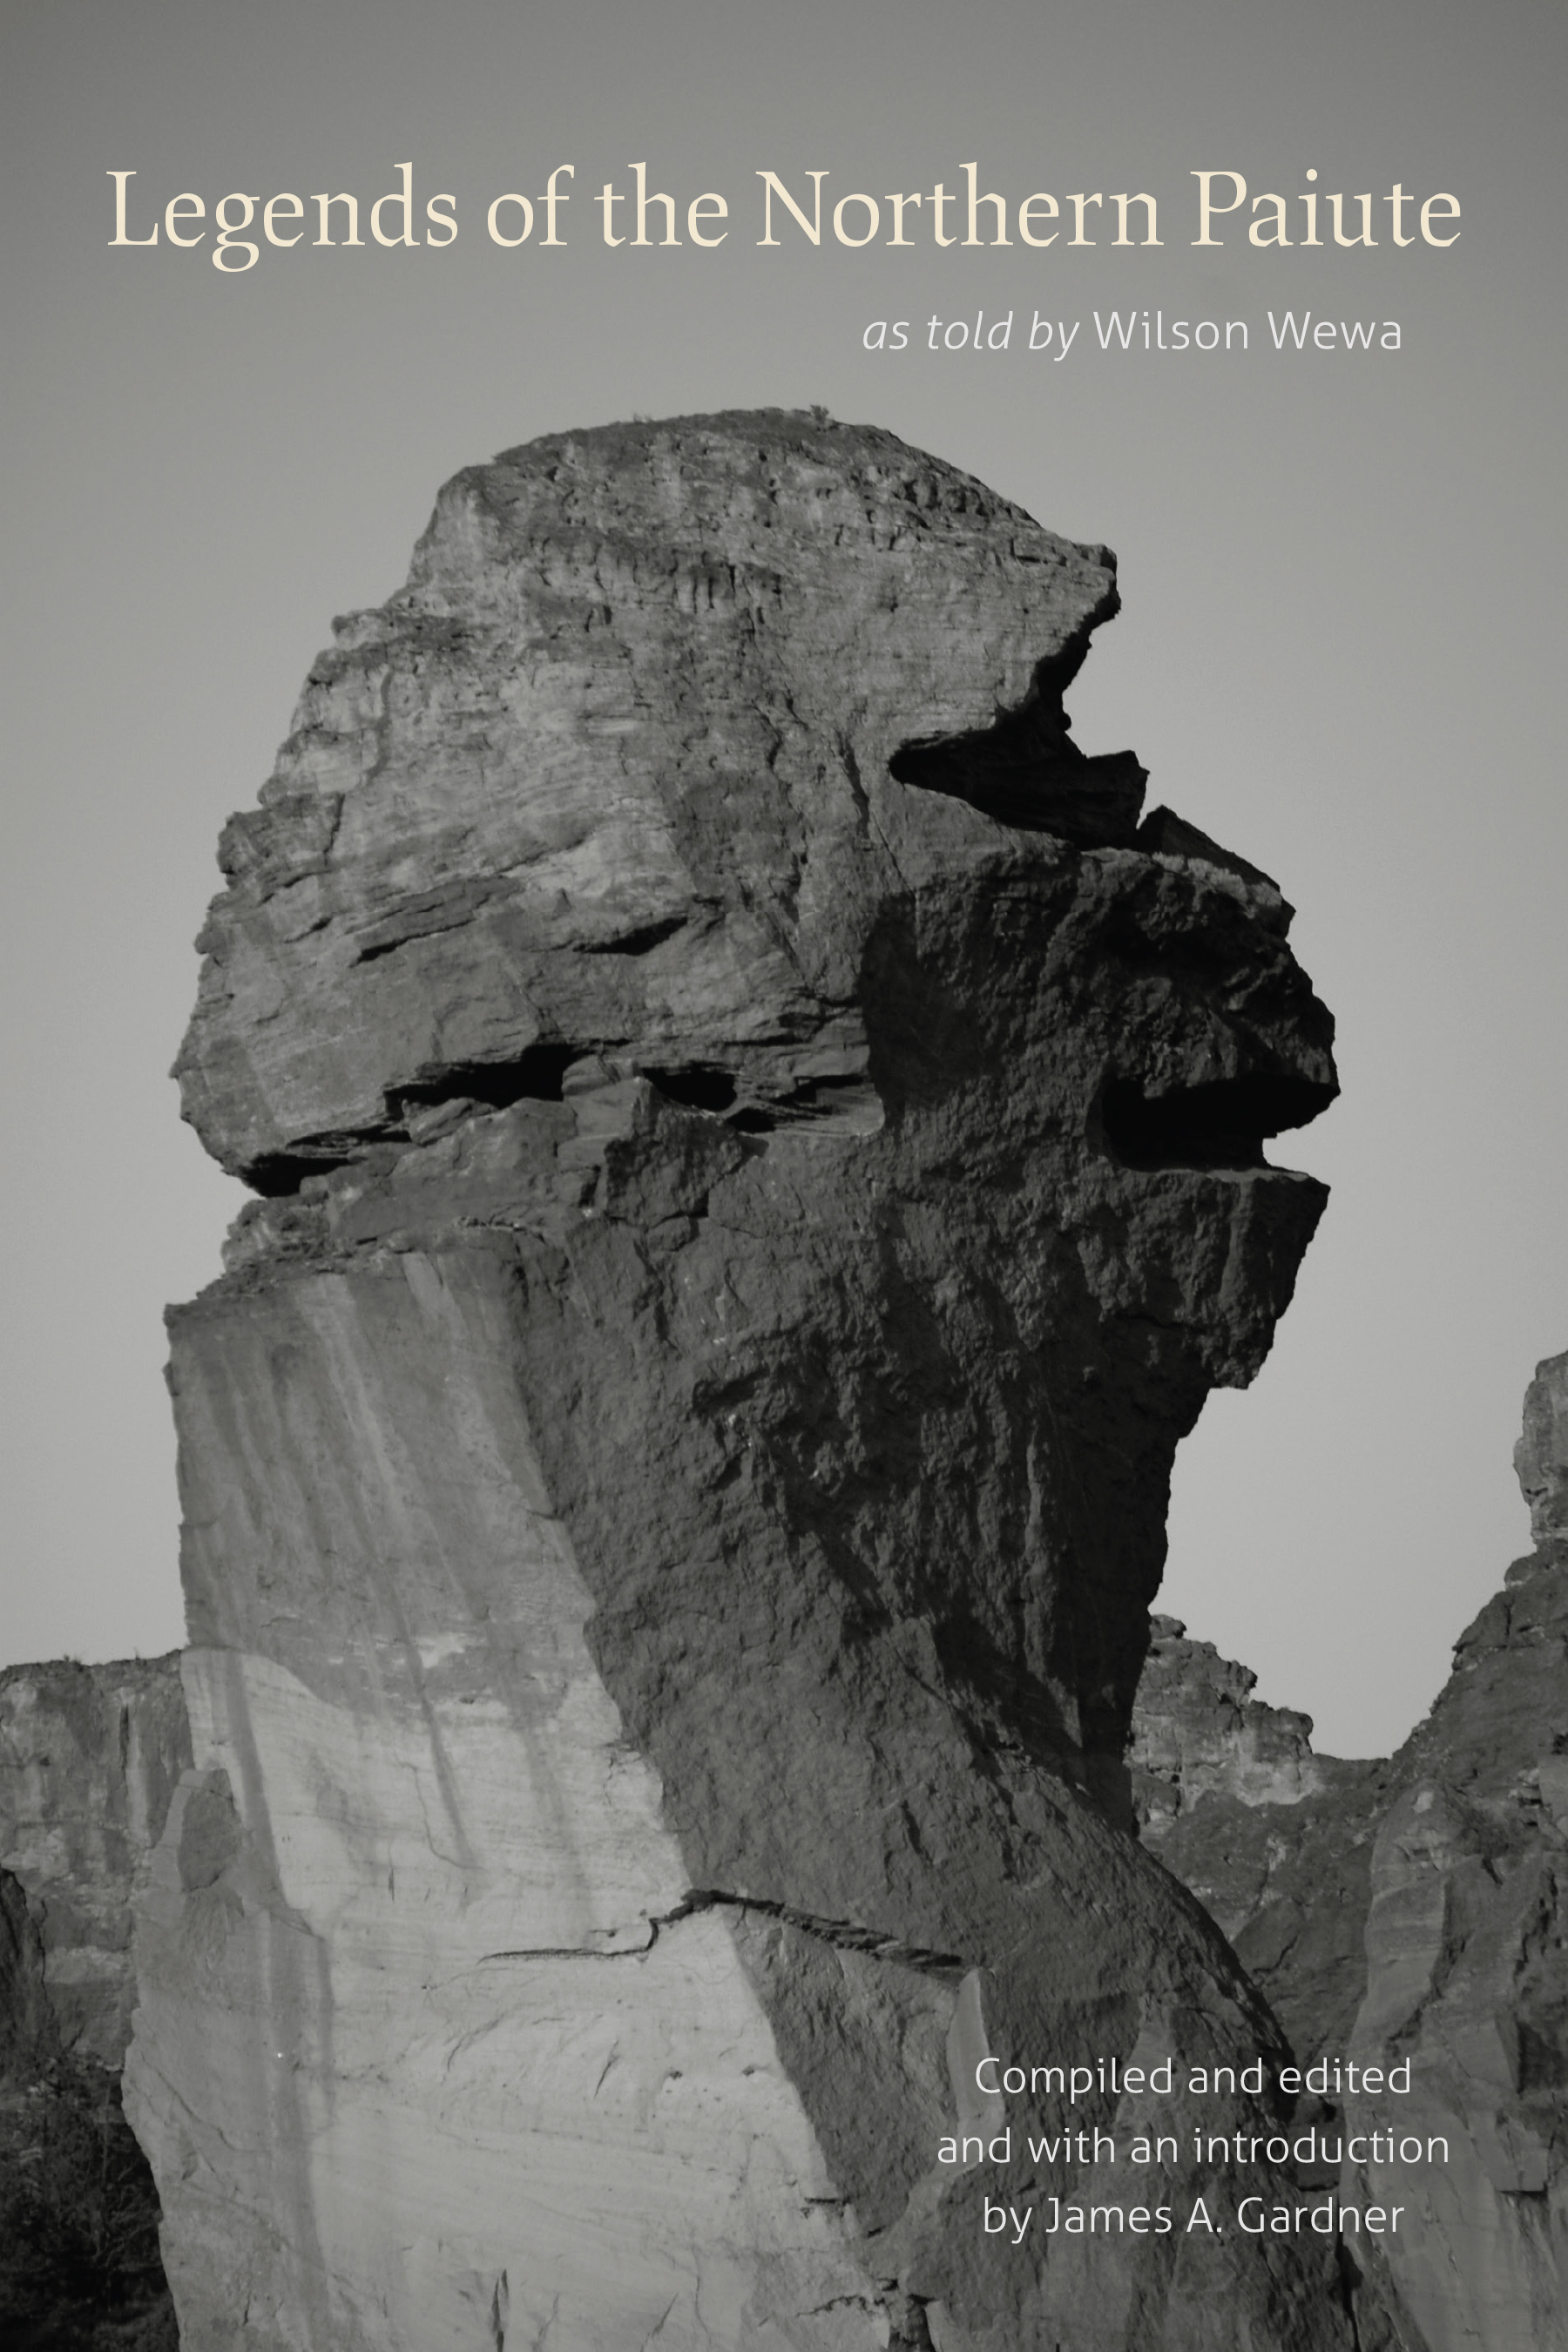 Book cover featuring Smith Rock pinnacle, known as Monkey Face or to the Paiute in Central Oregon as Numuzoho the Cannibal